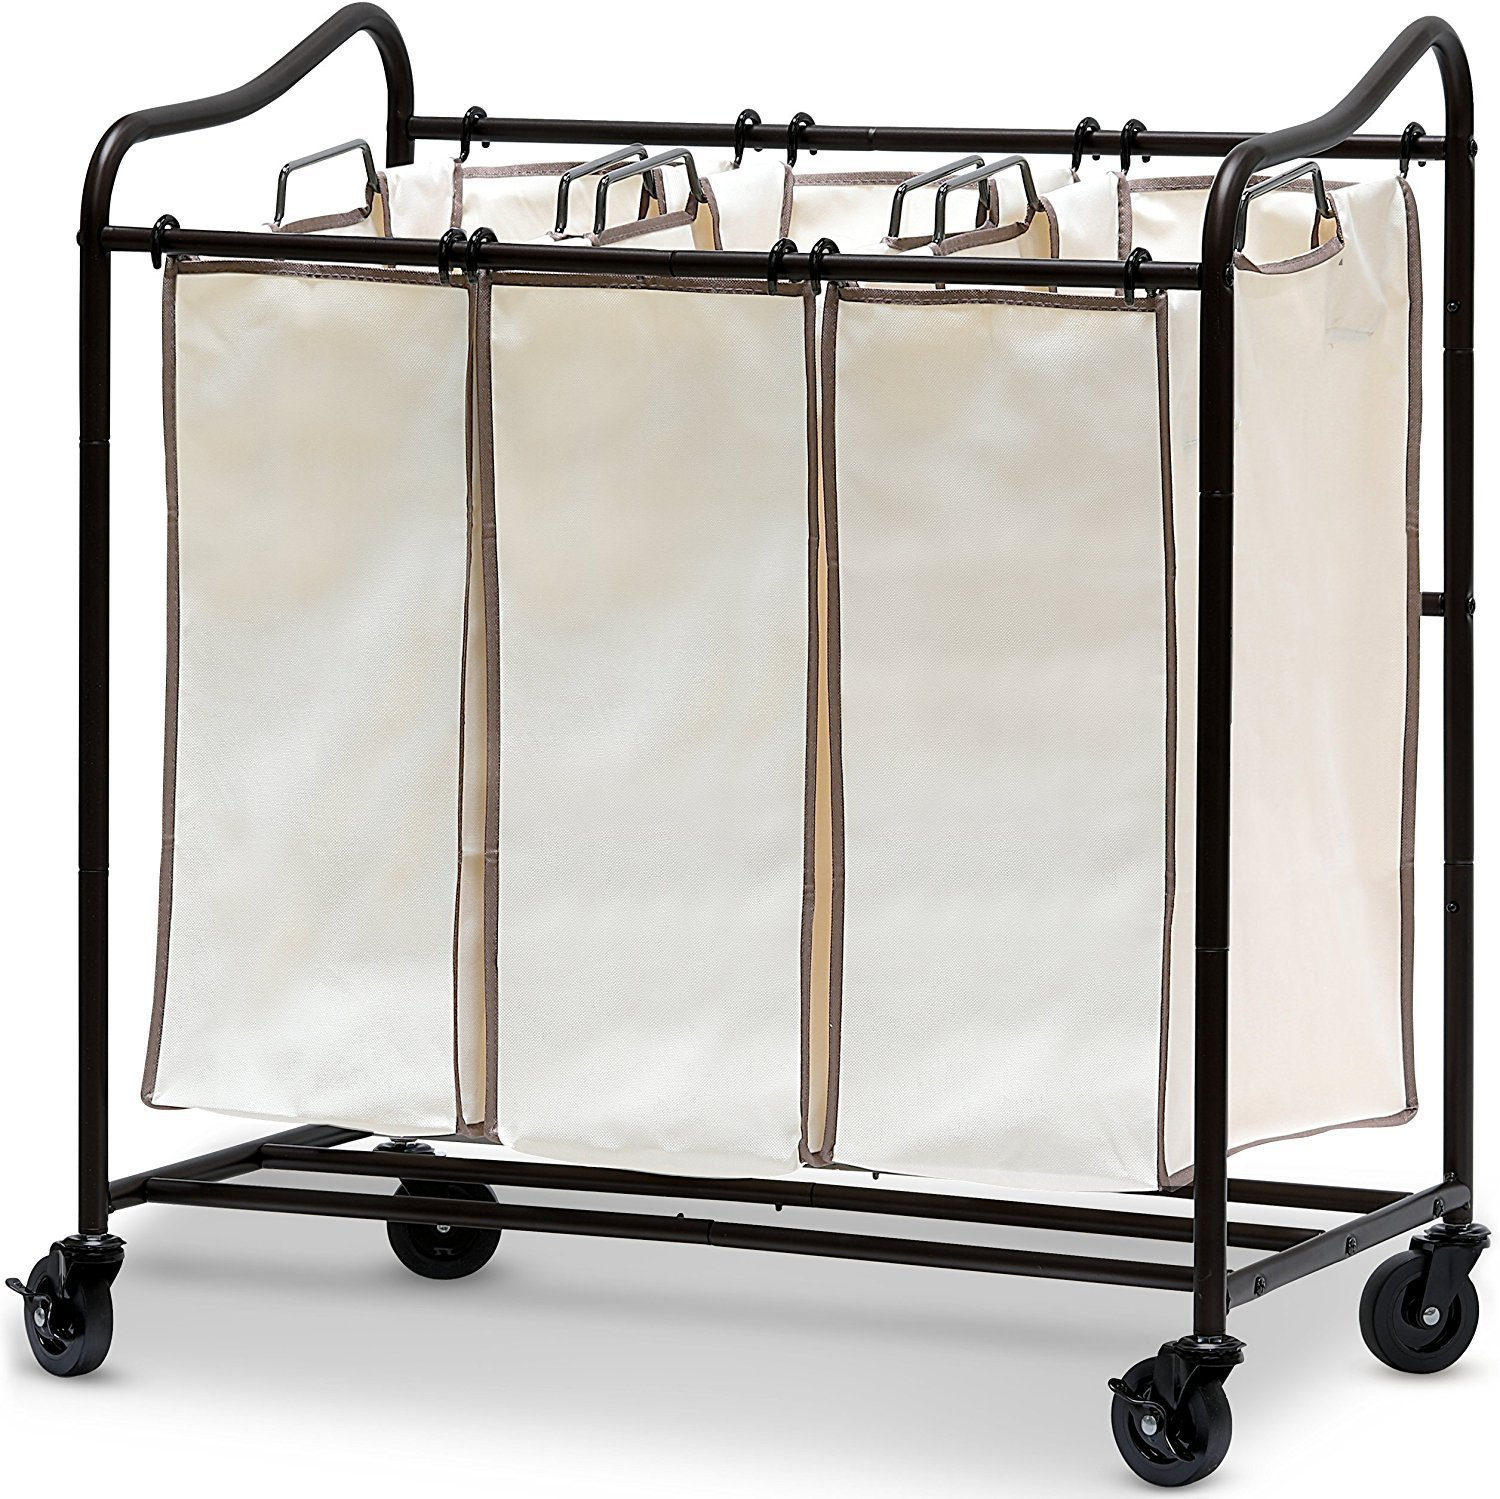 Simple Houseware Heavy-Duty 3-Bag Laundry Sorter Rolling Cart, Bronze BO-011-2